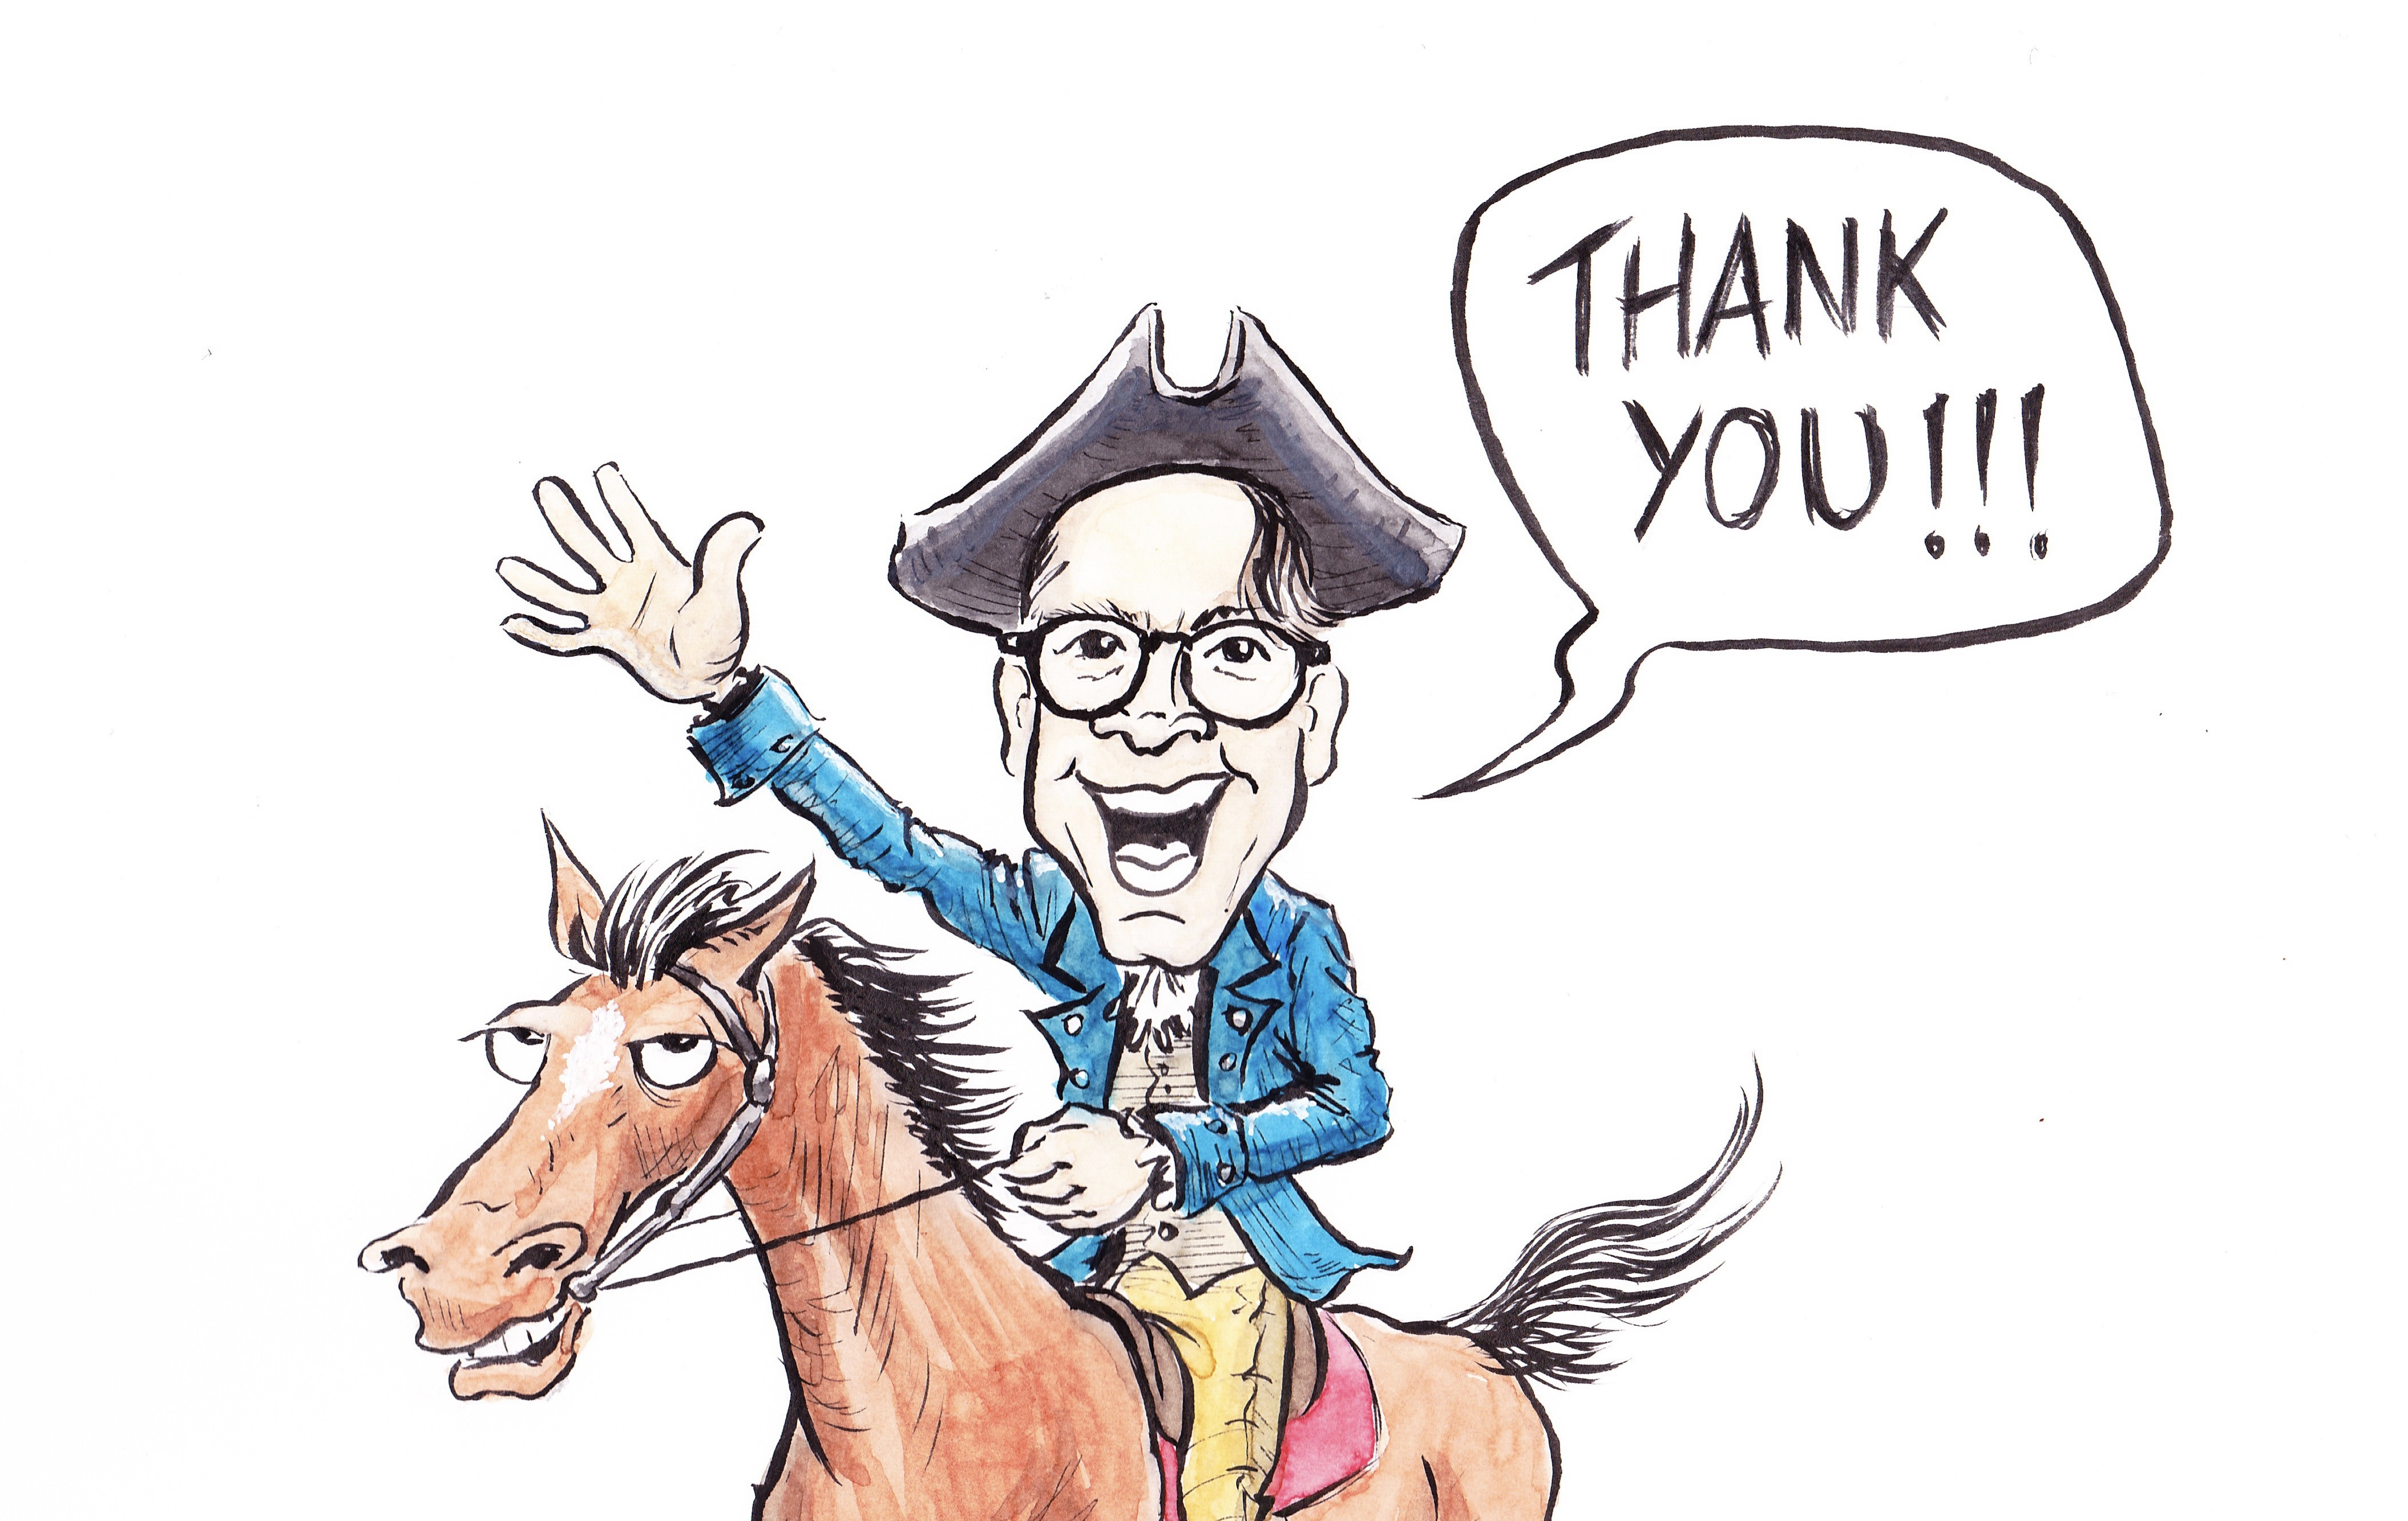 memoirs of paul revere essay contest On the way, at the town of lexington, americans who had been warned in advance by paul revere and others of the british movements made an attempt to stop the troops.